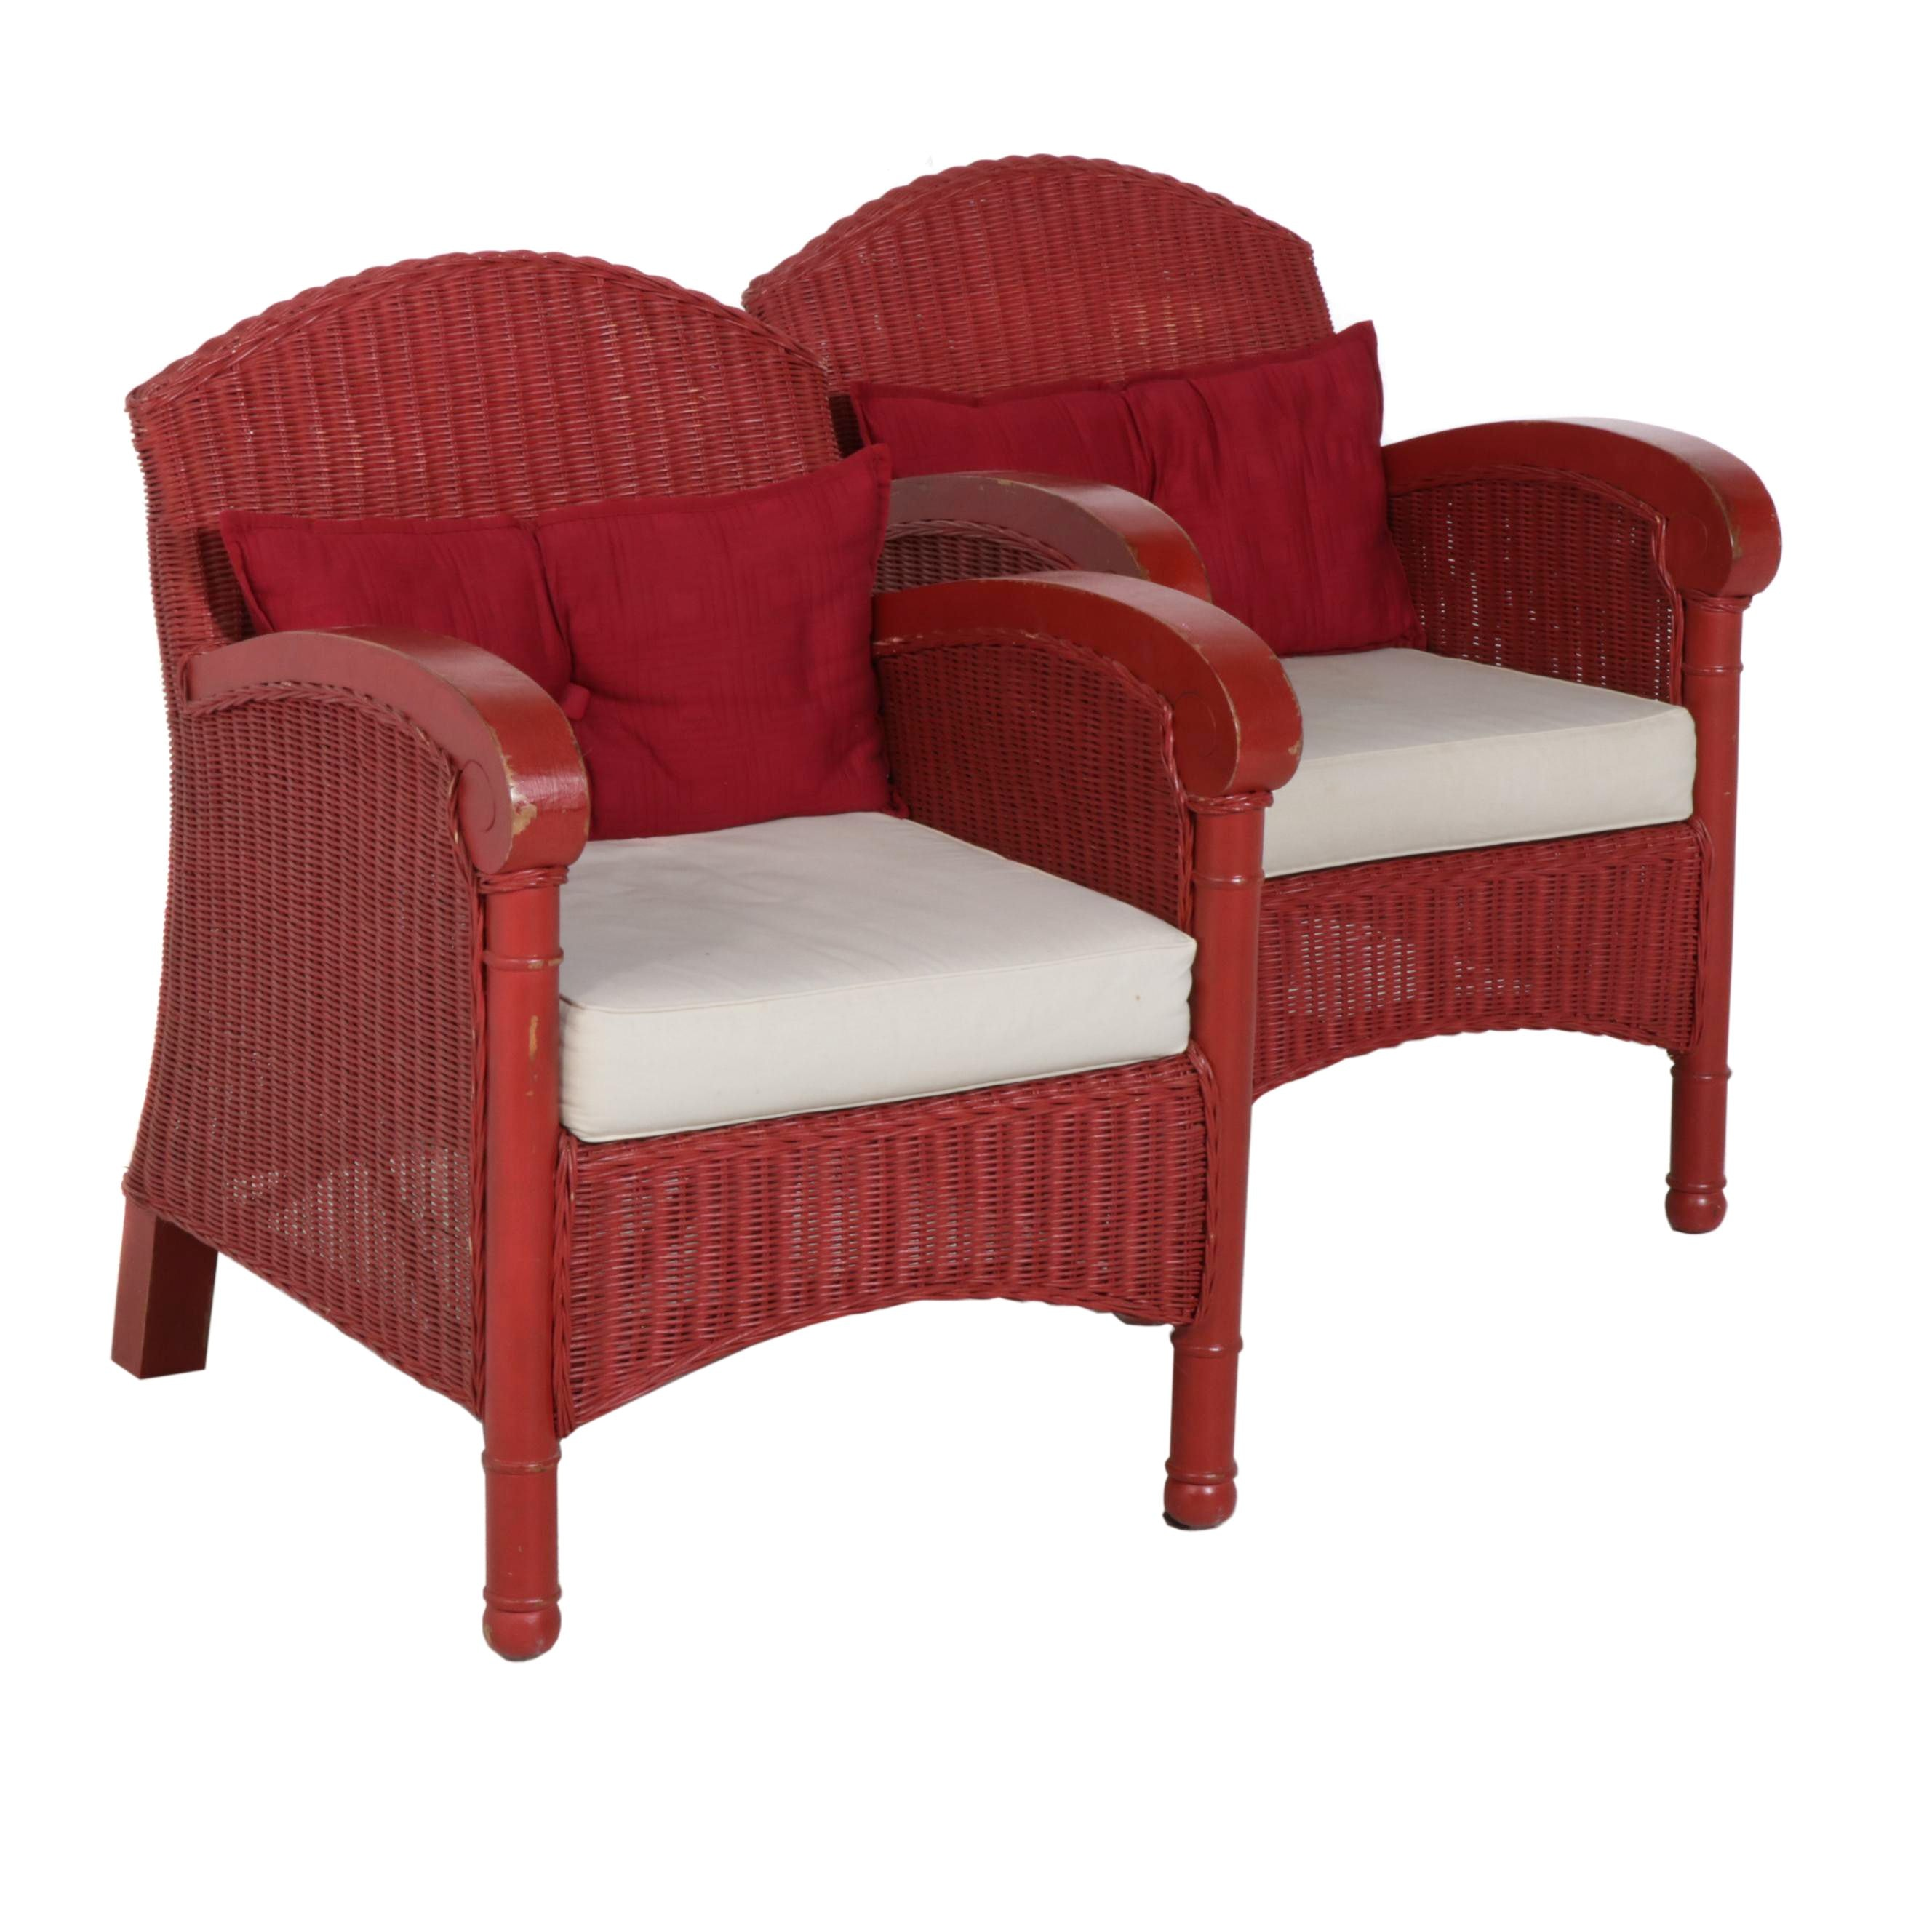 Contemporary Fieldcrest Painted Wicker Armchairs with Upholstered Cushions